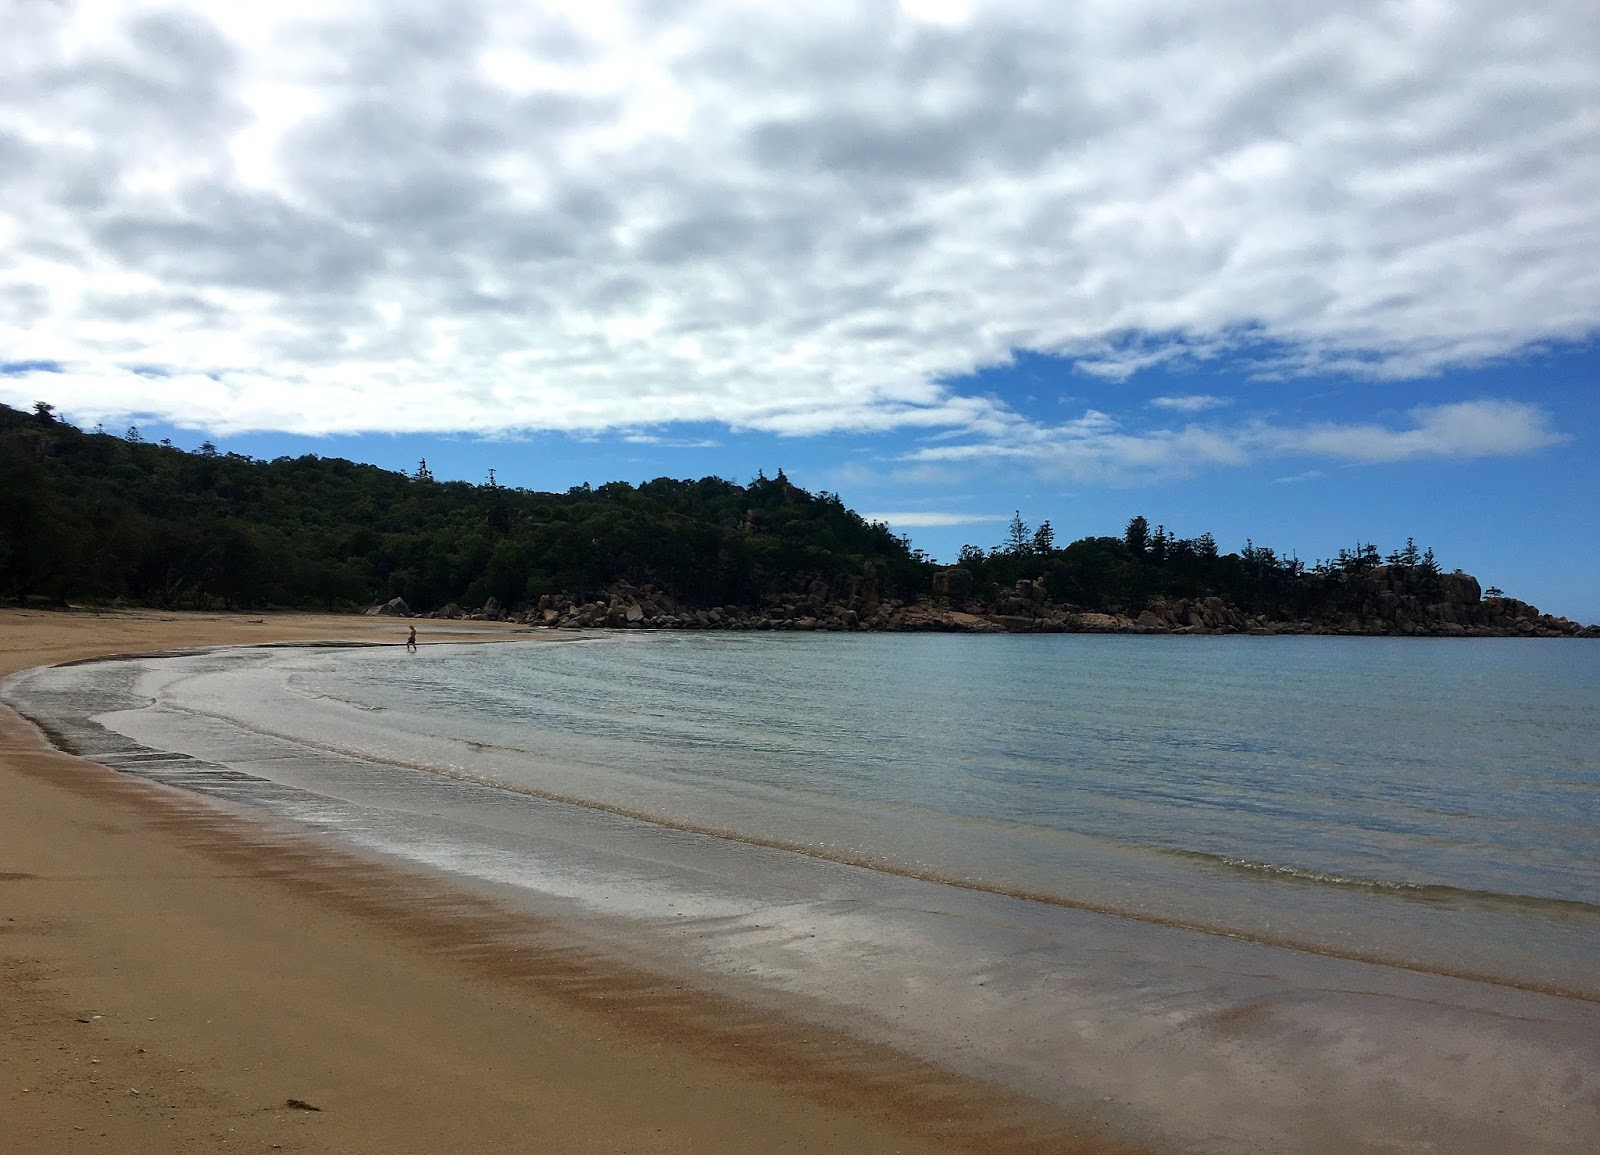 A tropical paradise in North Queensland called Magnetic Island is waiting for you to enjoy all it has to offer. Scuba diving and Full Moon parties are just the tip of the iceberg. Read more from the article.